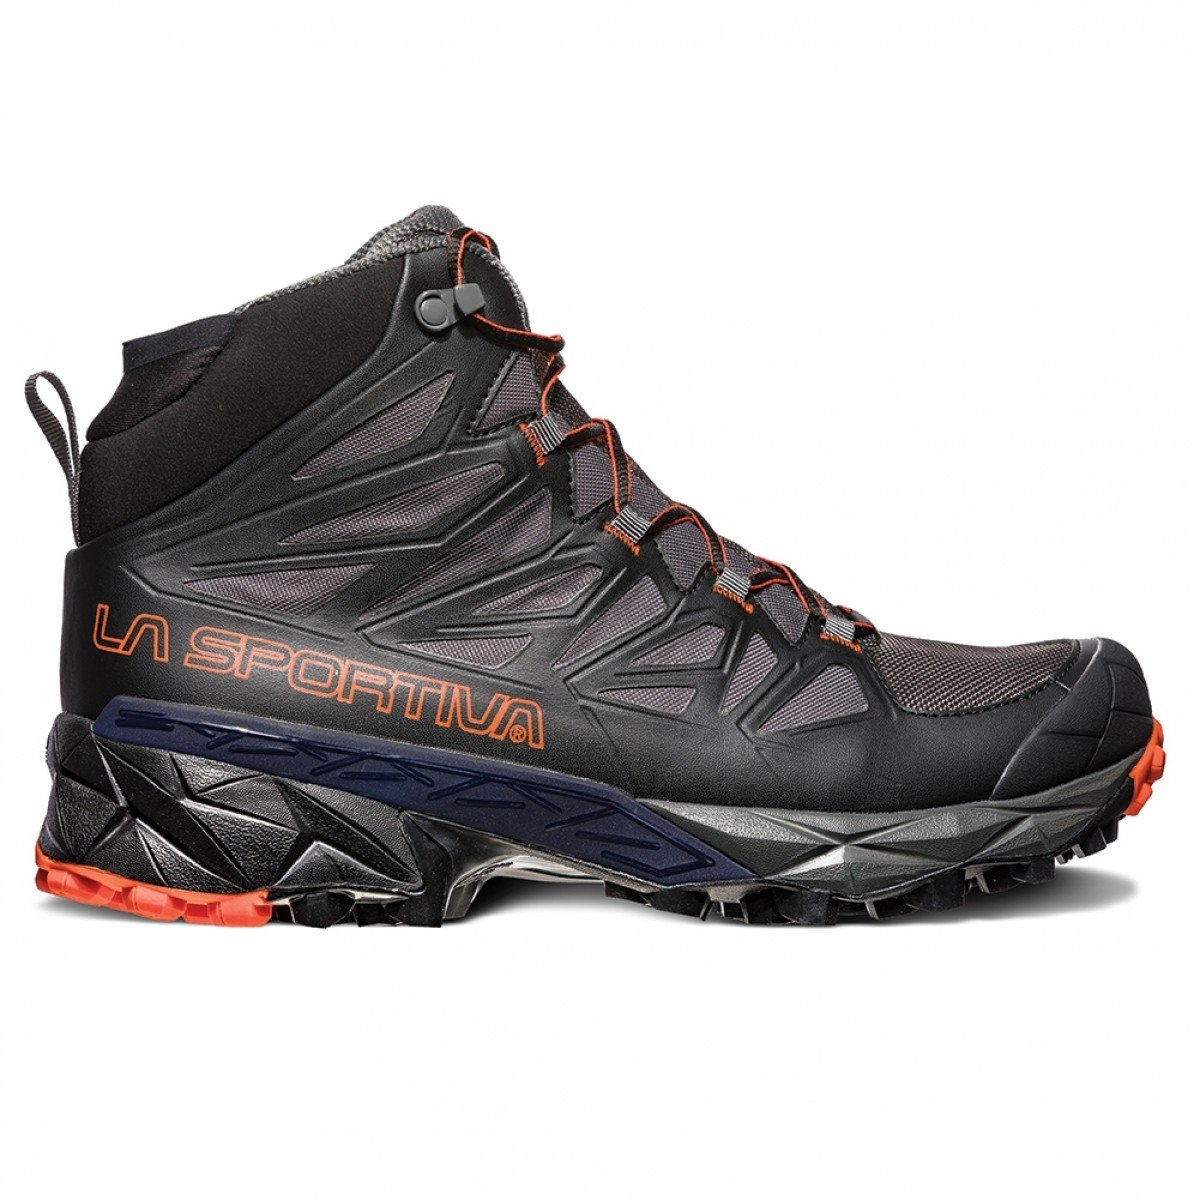 La Sportiva Blade GTX Hiking Shoe - Men's B07213JVF8 44 D EU|Black/Tangerine